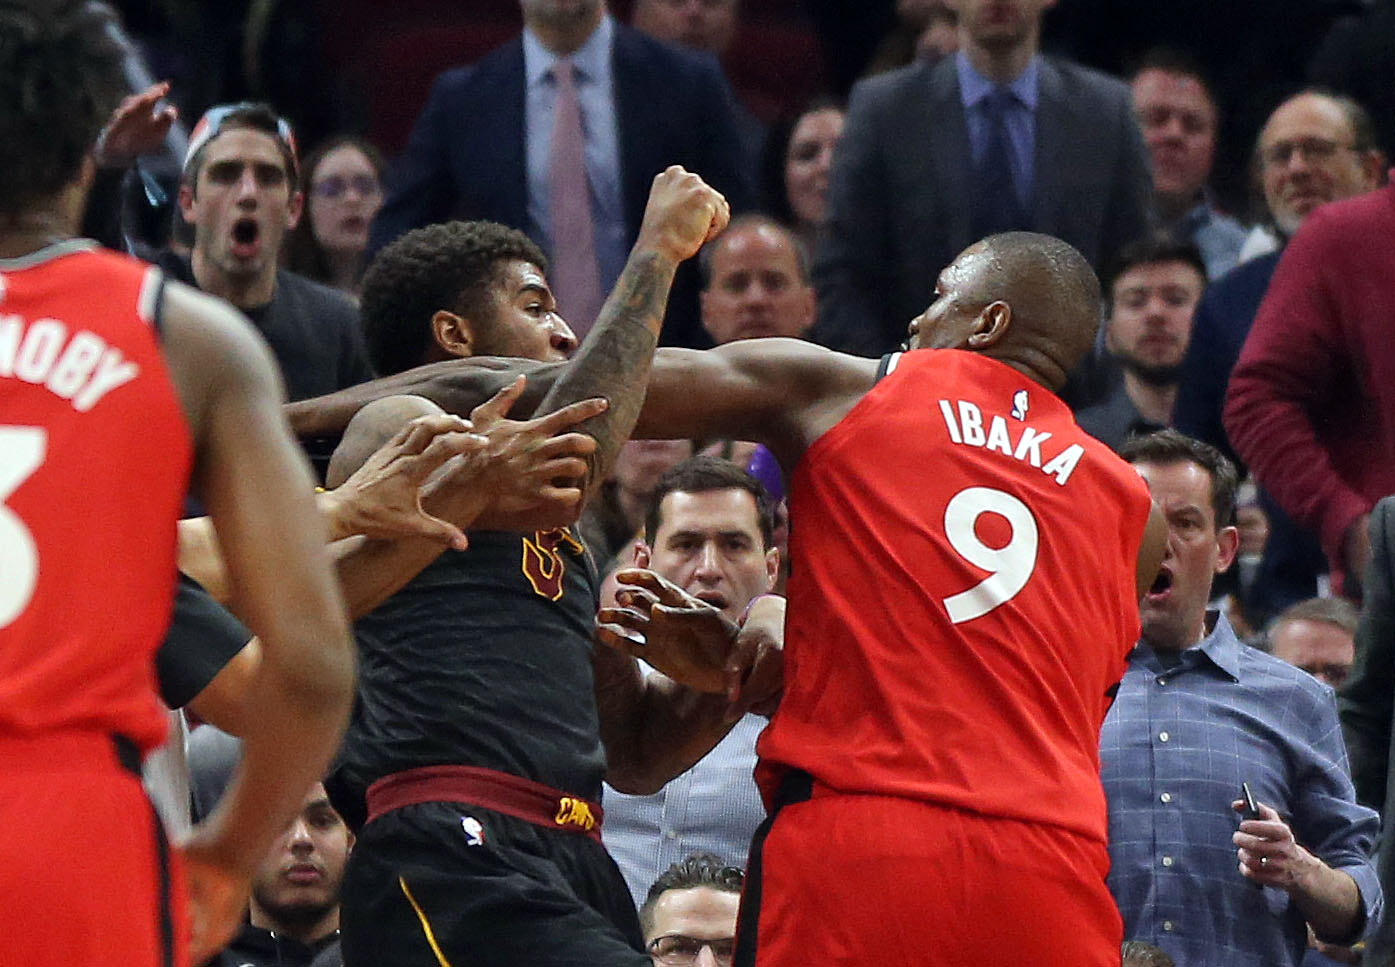 Cleveland Cavaliers vs. Toronto Raptors, March 11, 2019